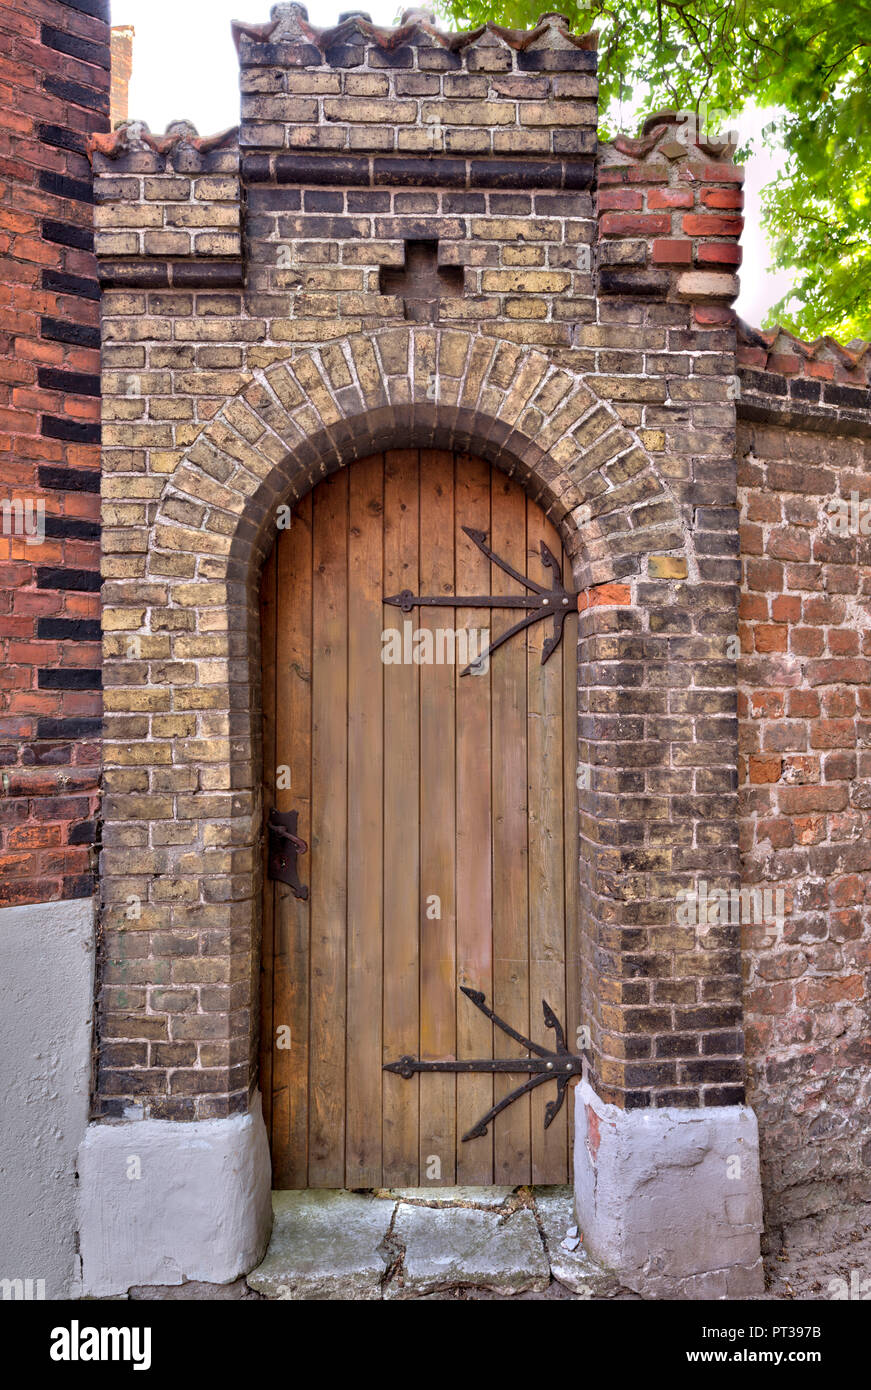 House facade, front door, Wismar, Baltic Sea coast, Mecklenburg-Vorpommern, Germany, Europe - Stock Image